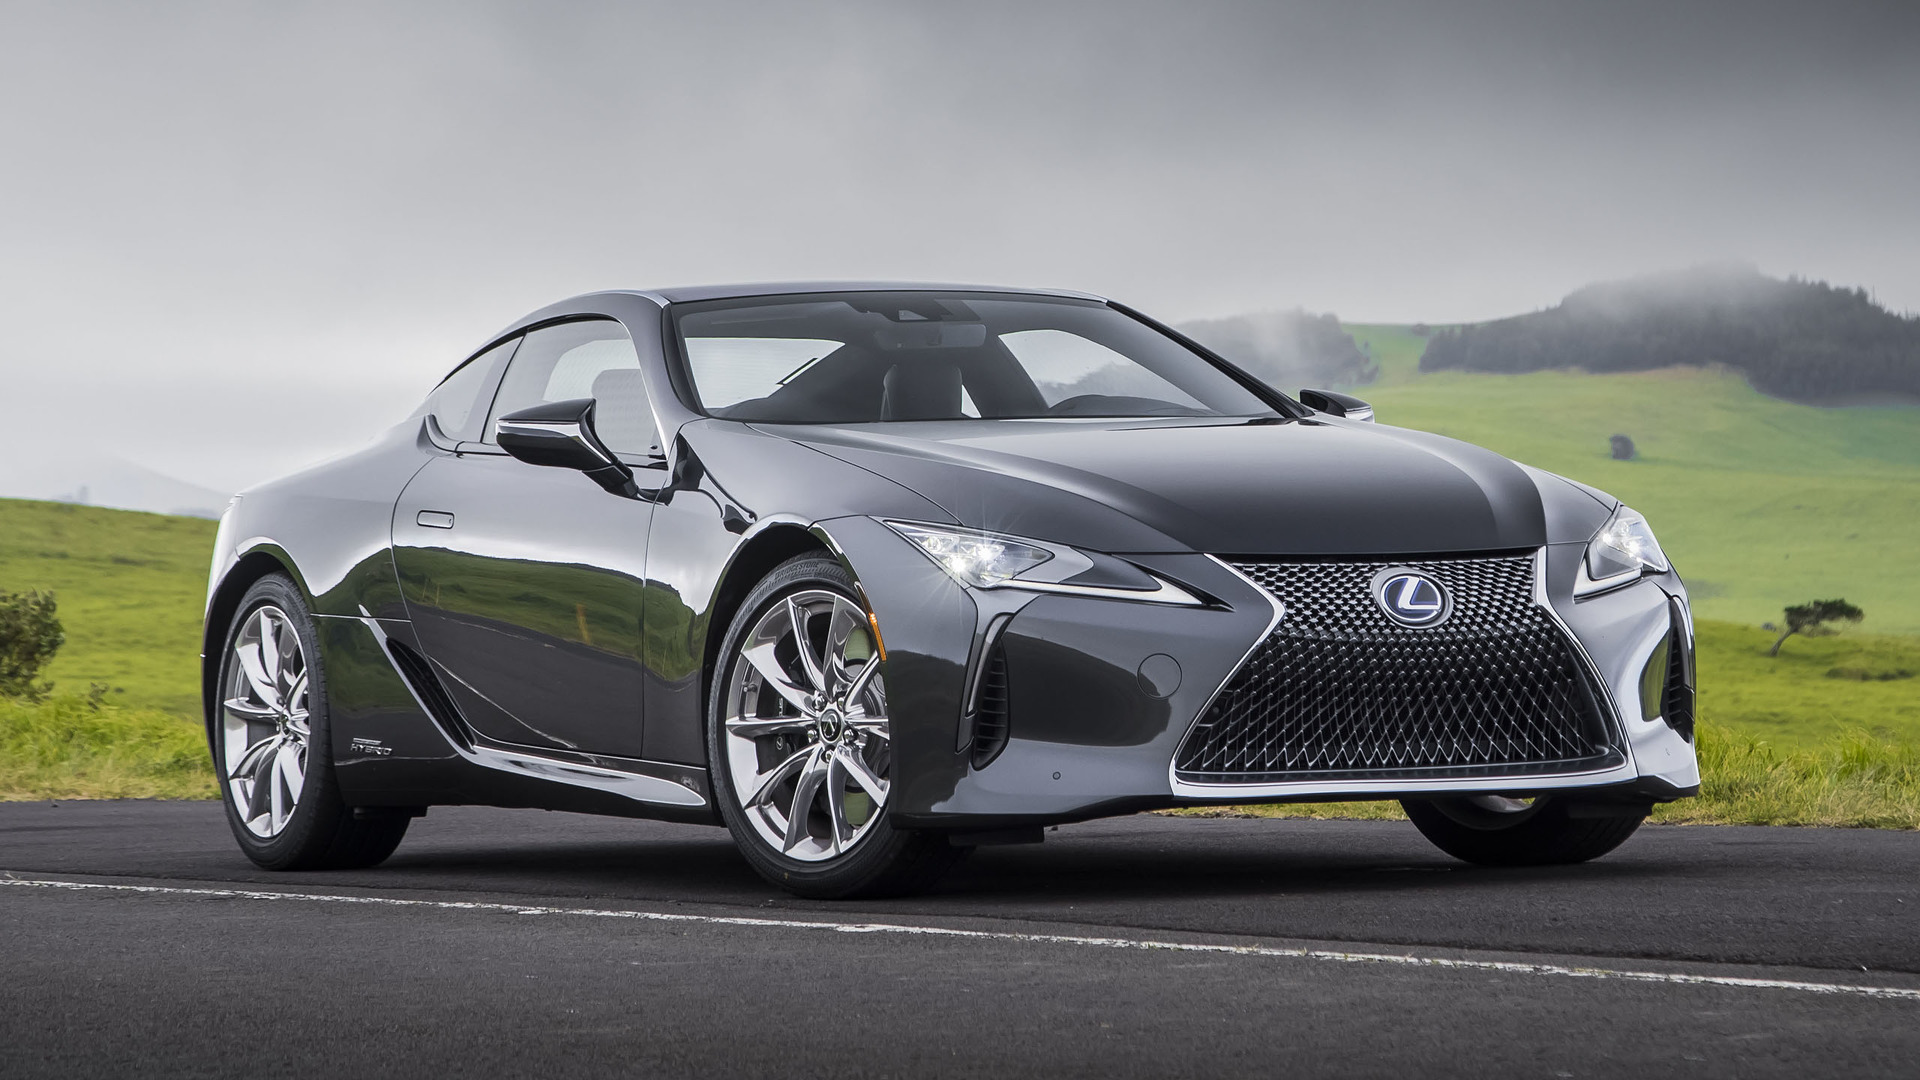 Best Cars For Hawaii >> 2018 Lexus LC 500h First Drive: The hotshot hybrid